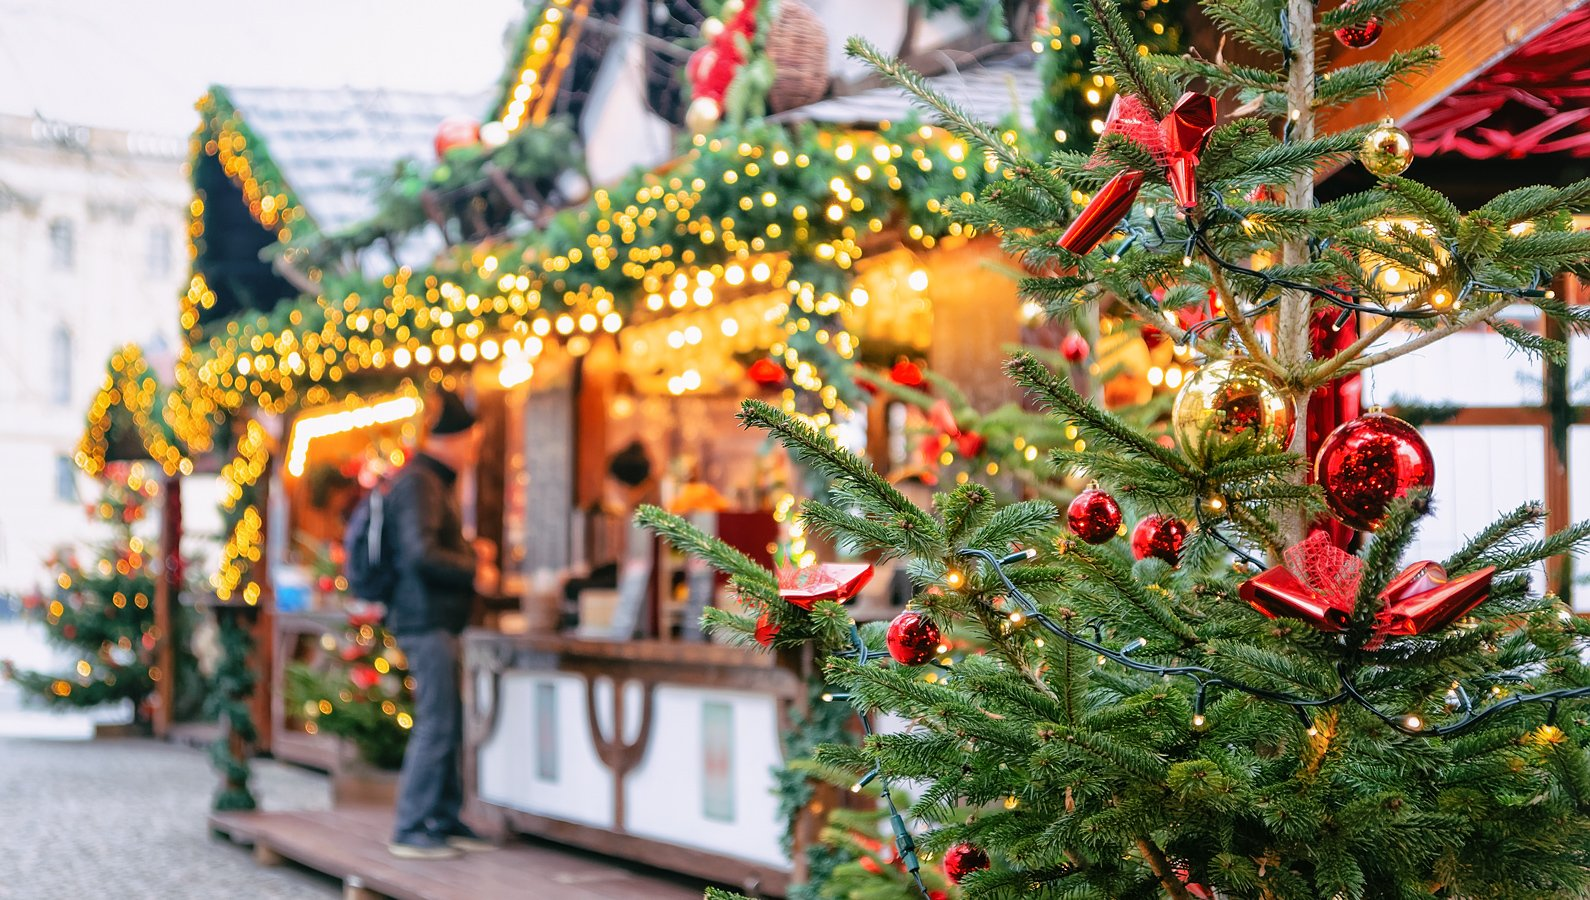 11 Unique Christmas Traditions From Around the World